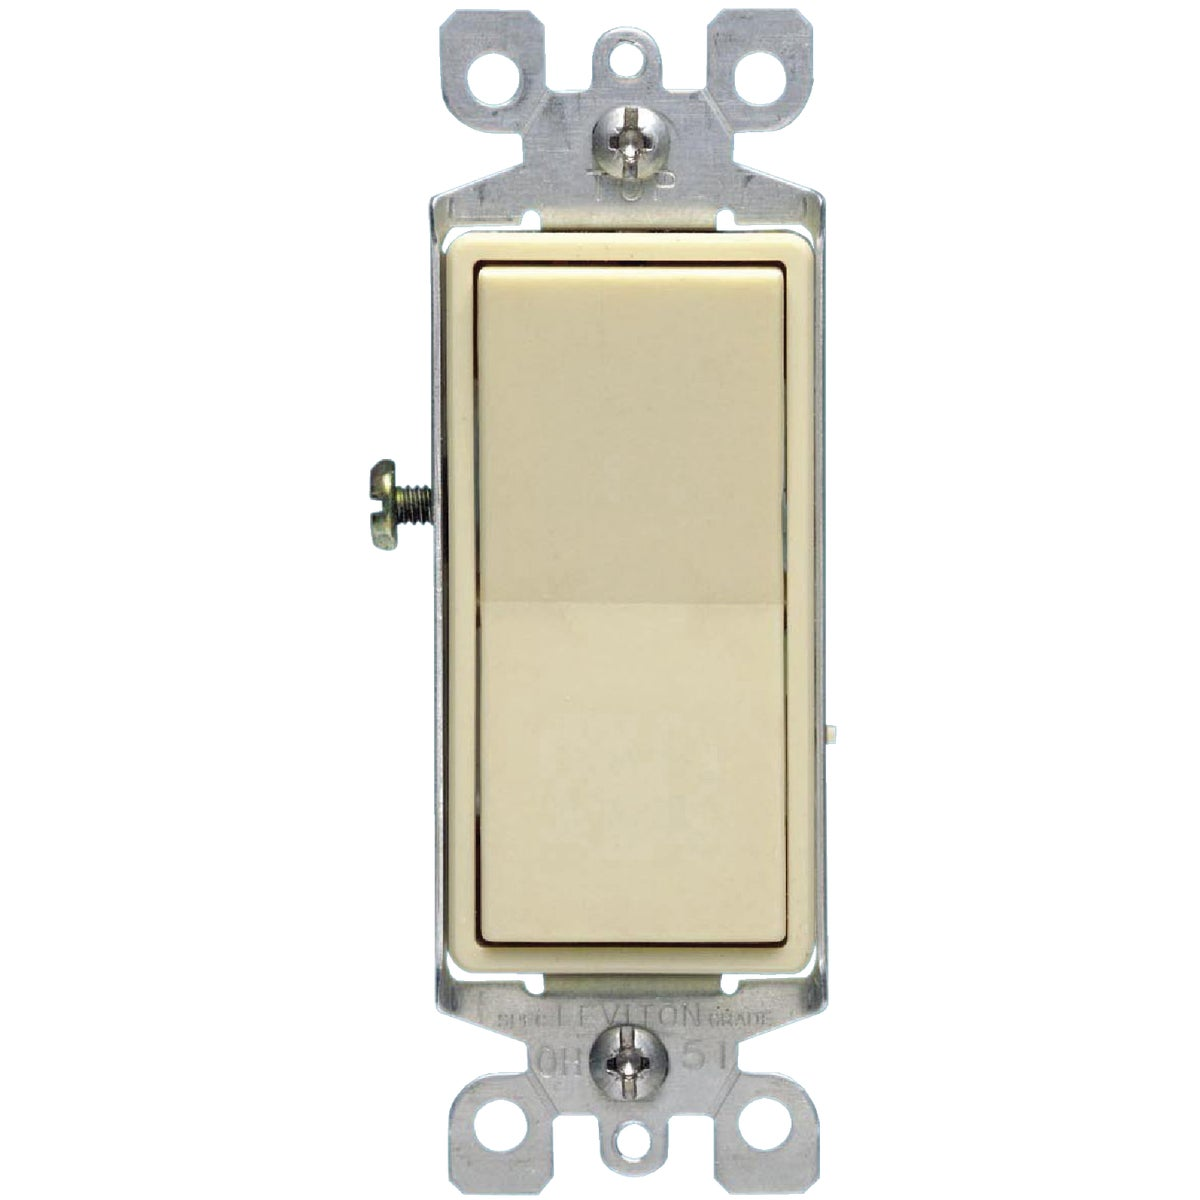 IVORY LTD 3WAY SWTICH - S01-05613-2IS by Leviton Mfg Co